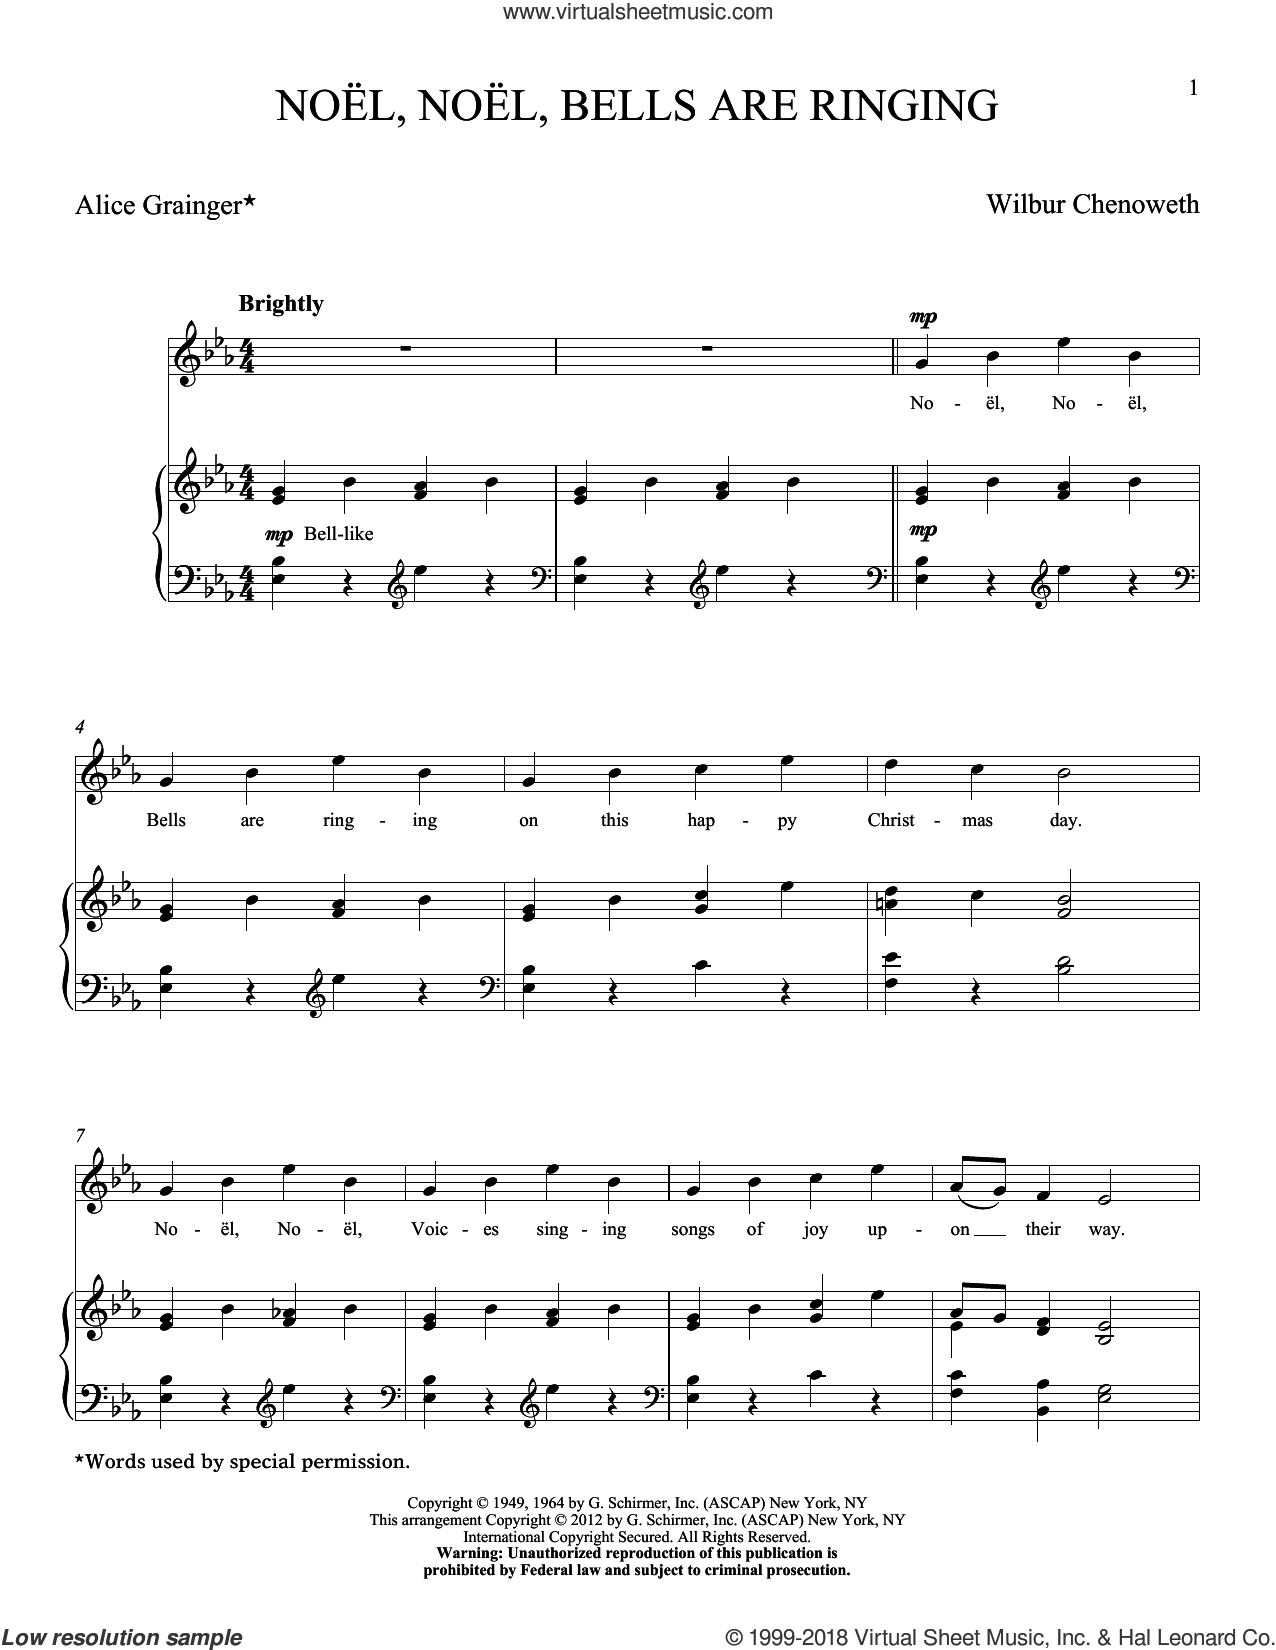 Noel, Noel, Bells Are Ringing sheet music for voice and piano (High ) by Wilbur Chenoweth, classical score, intermediate. Score Image Preview.